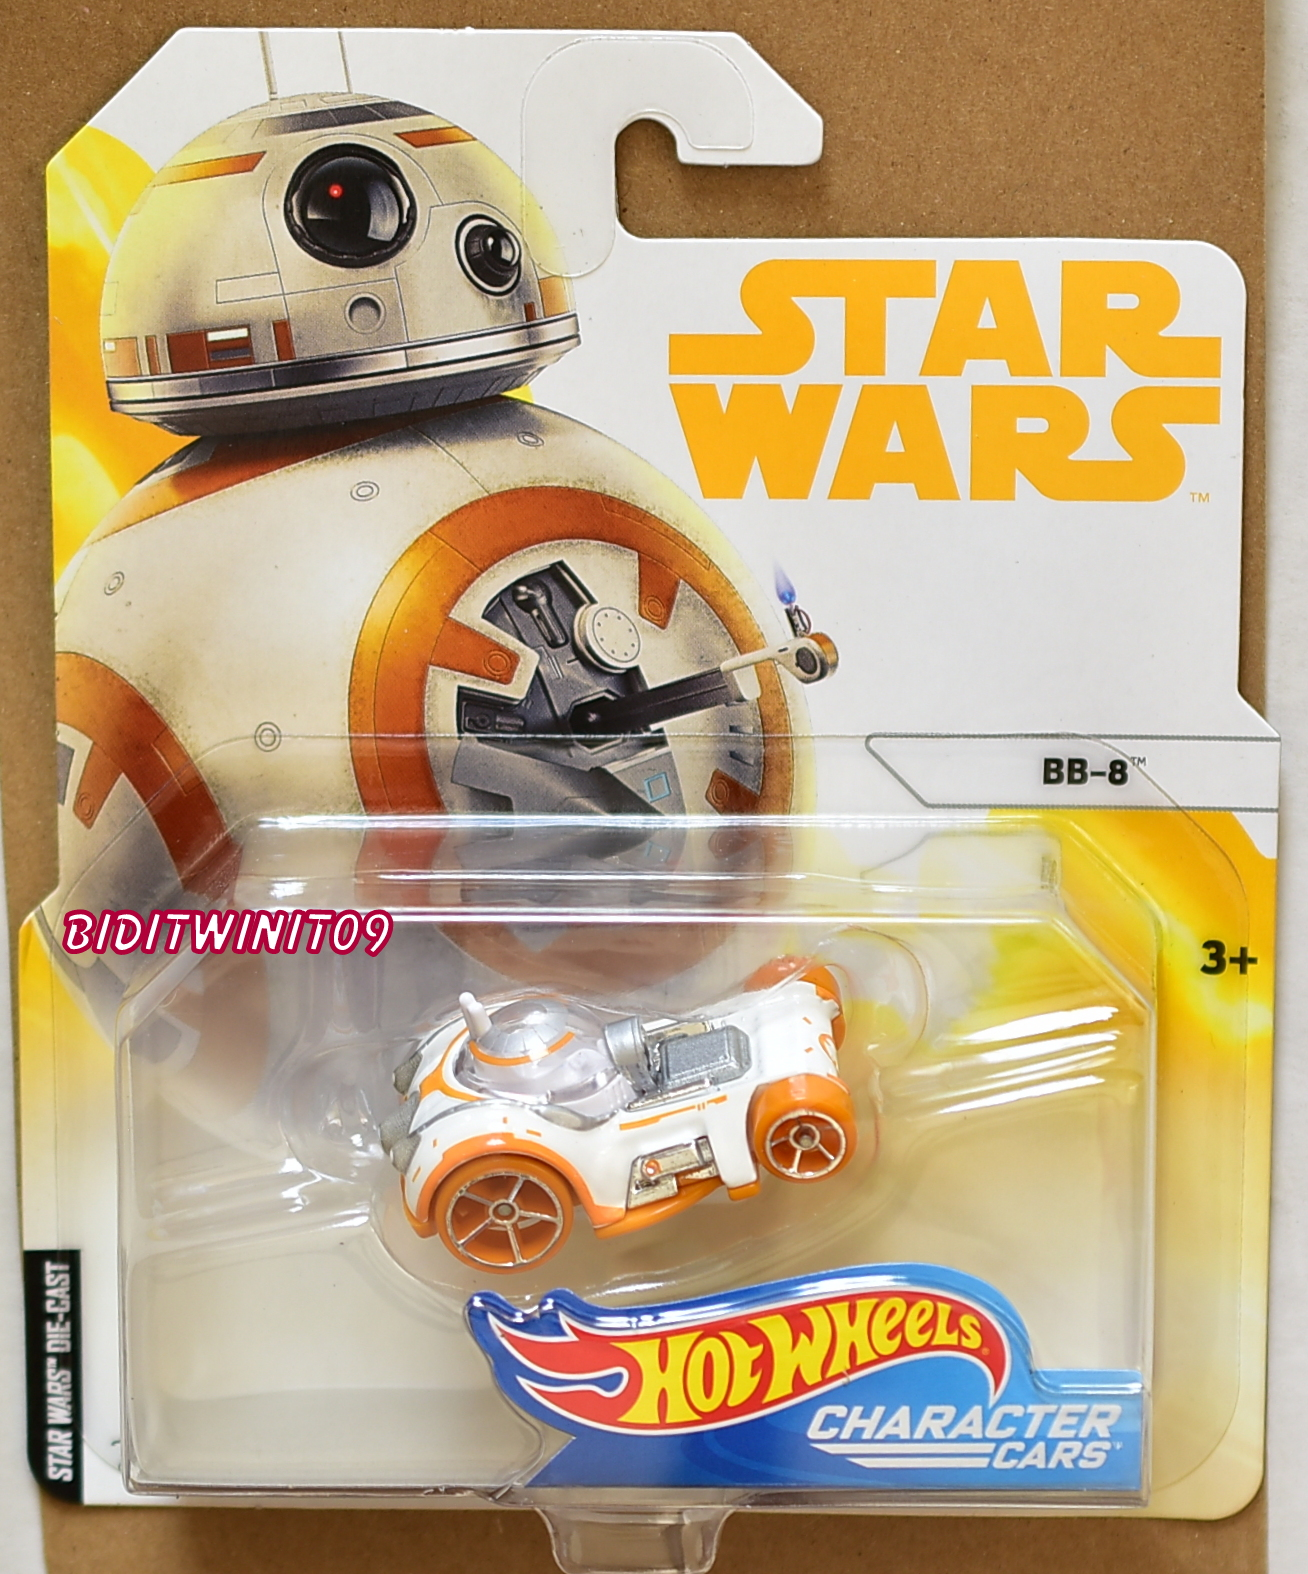 HOT WHEELS 2018 STAR WARS BB-8 CHARACTER CARS